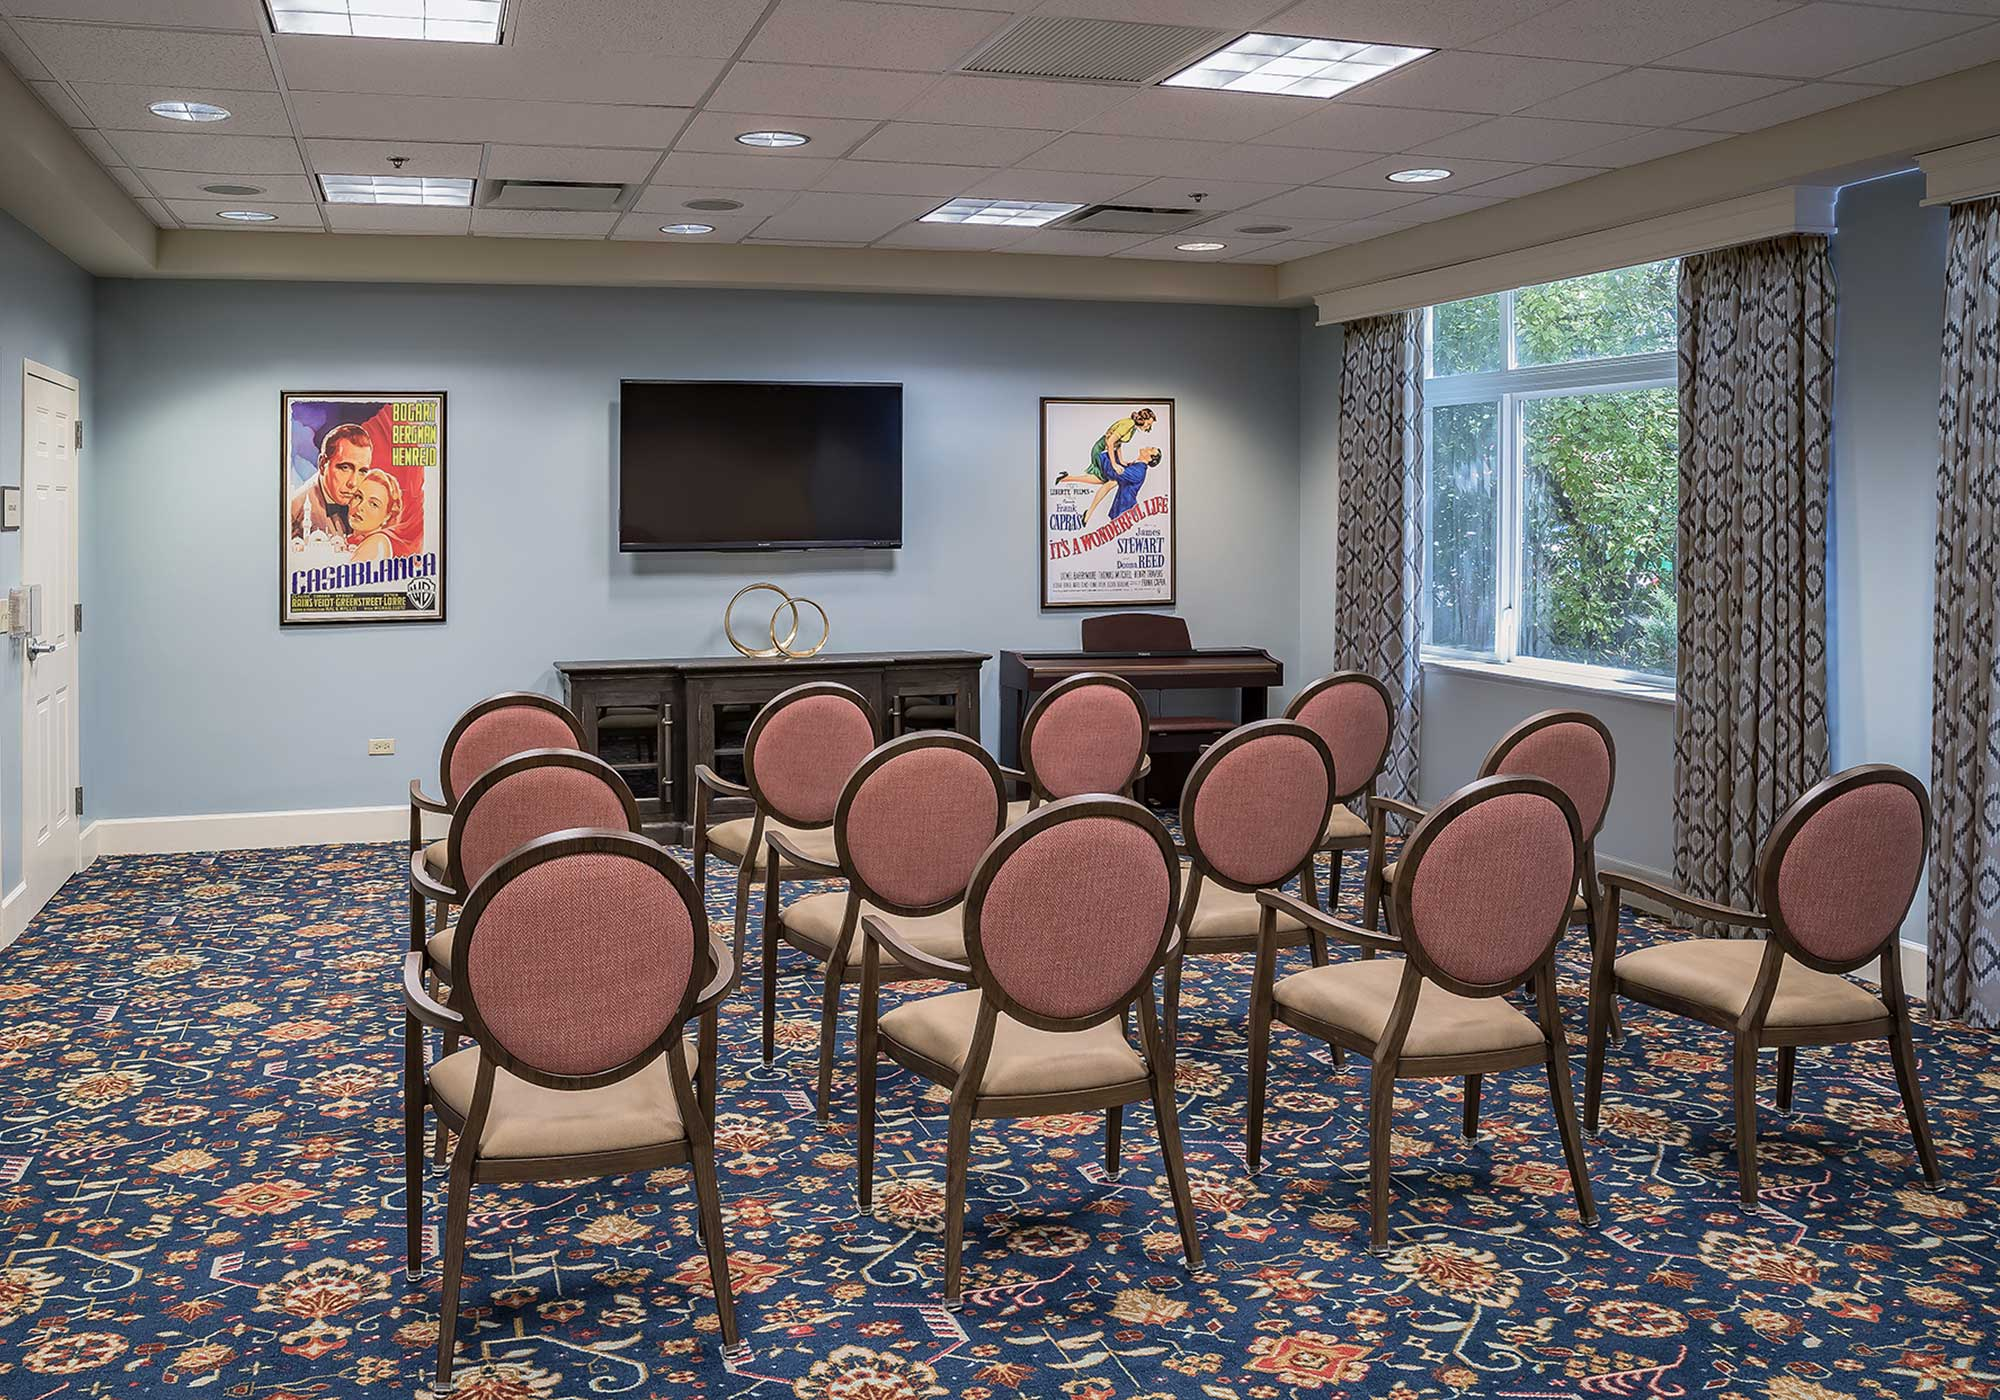 Meeting room filled with chairs with round backs